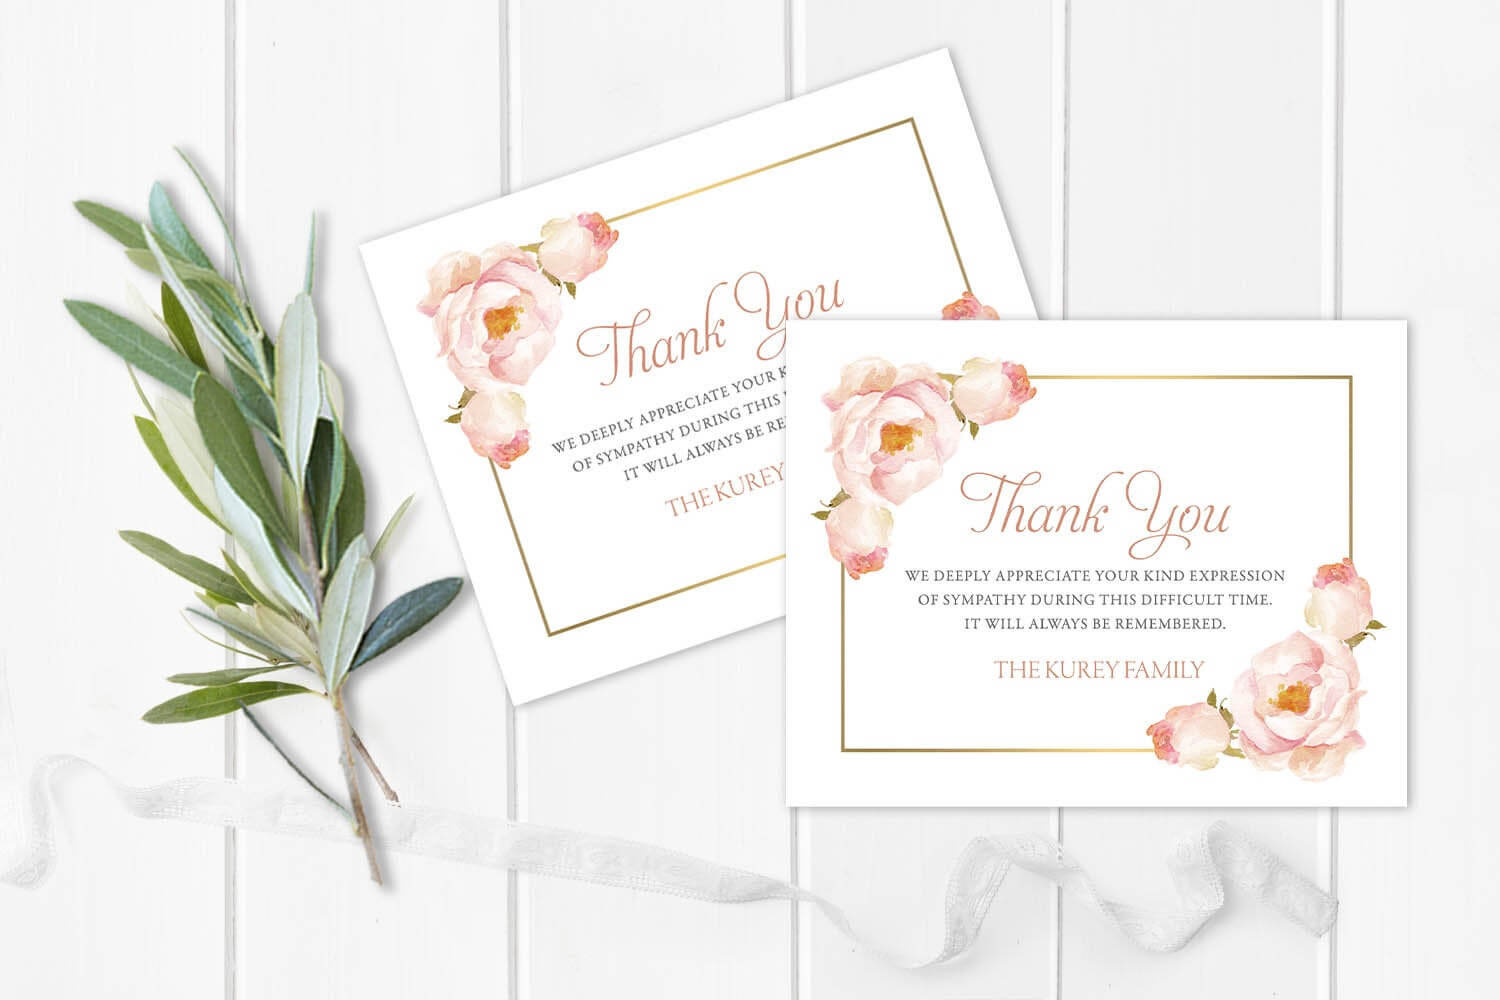 Funeral Acknowledgement Card Template Floral Sympathy Thank You Note  Funeral Cards Memorial Service Blush Rose Printable Template Or Printed with regard to Sympathy Thank You Card Template